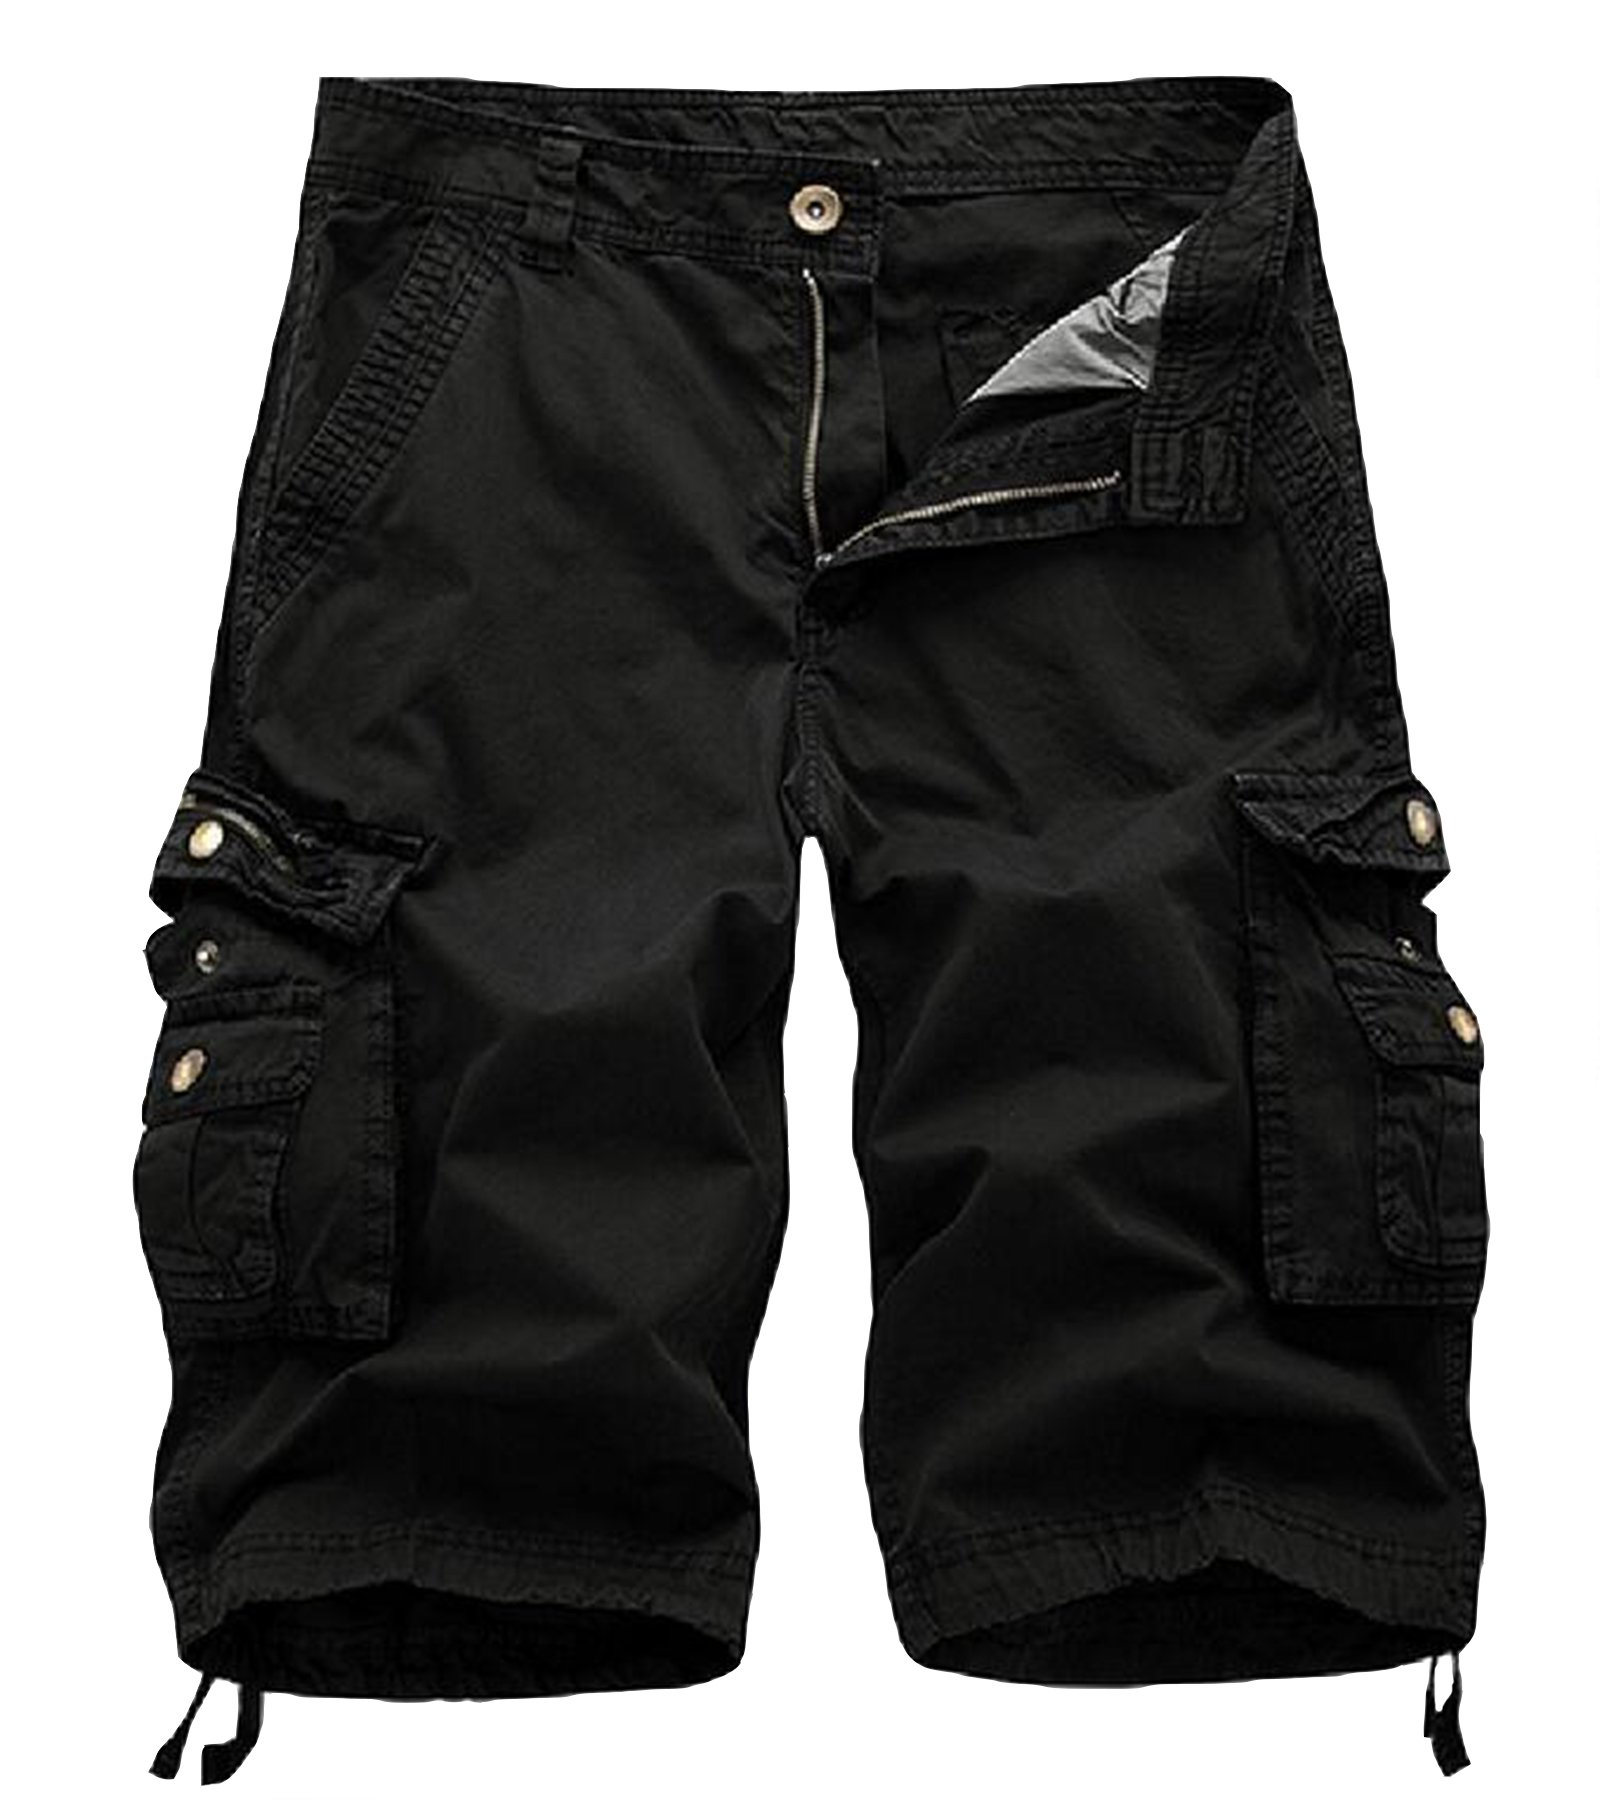 AOYOG Mens Solid MultiPocket Cargo Shorts Casual Slim Fit Cotton Solid Camo Shorts, Black 082, Lable size 36(US 34)